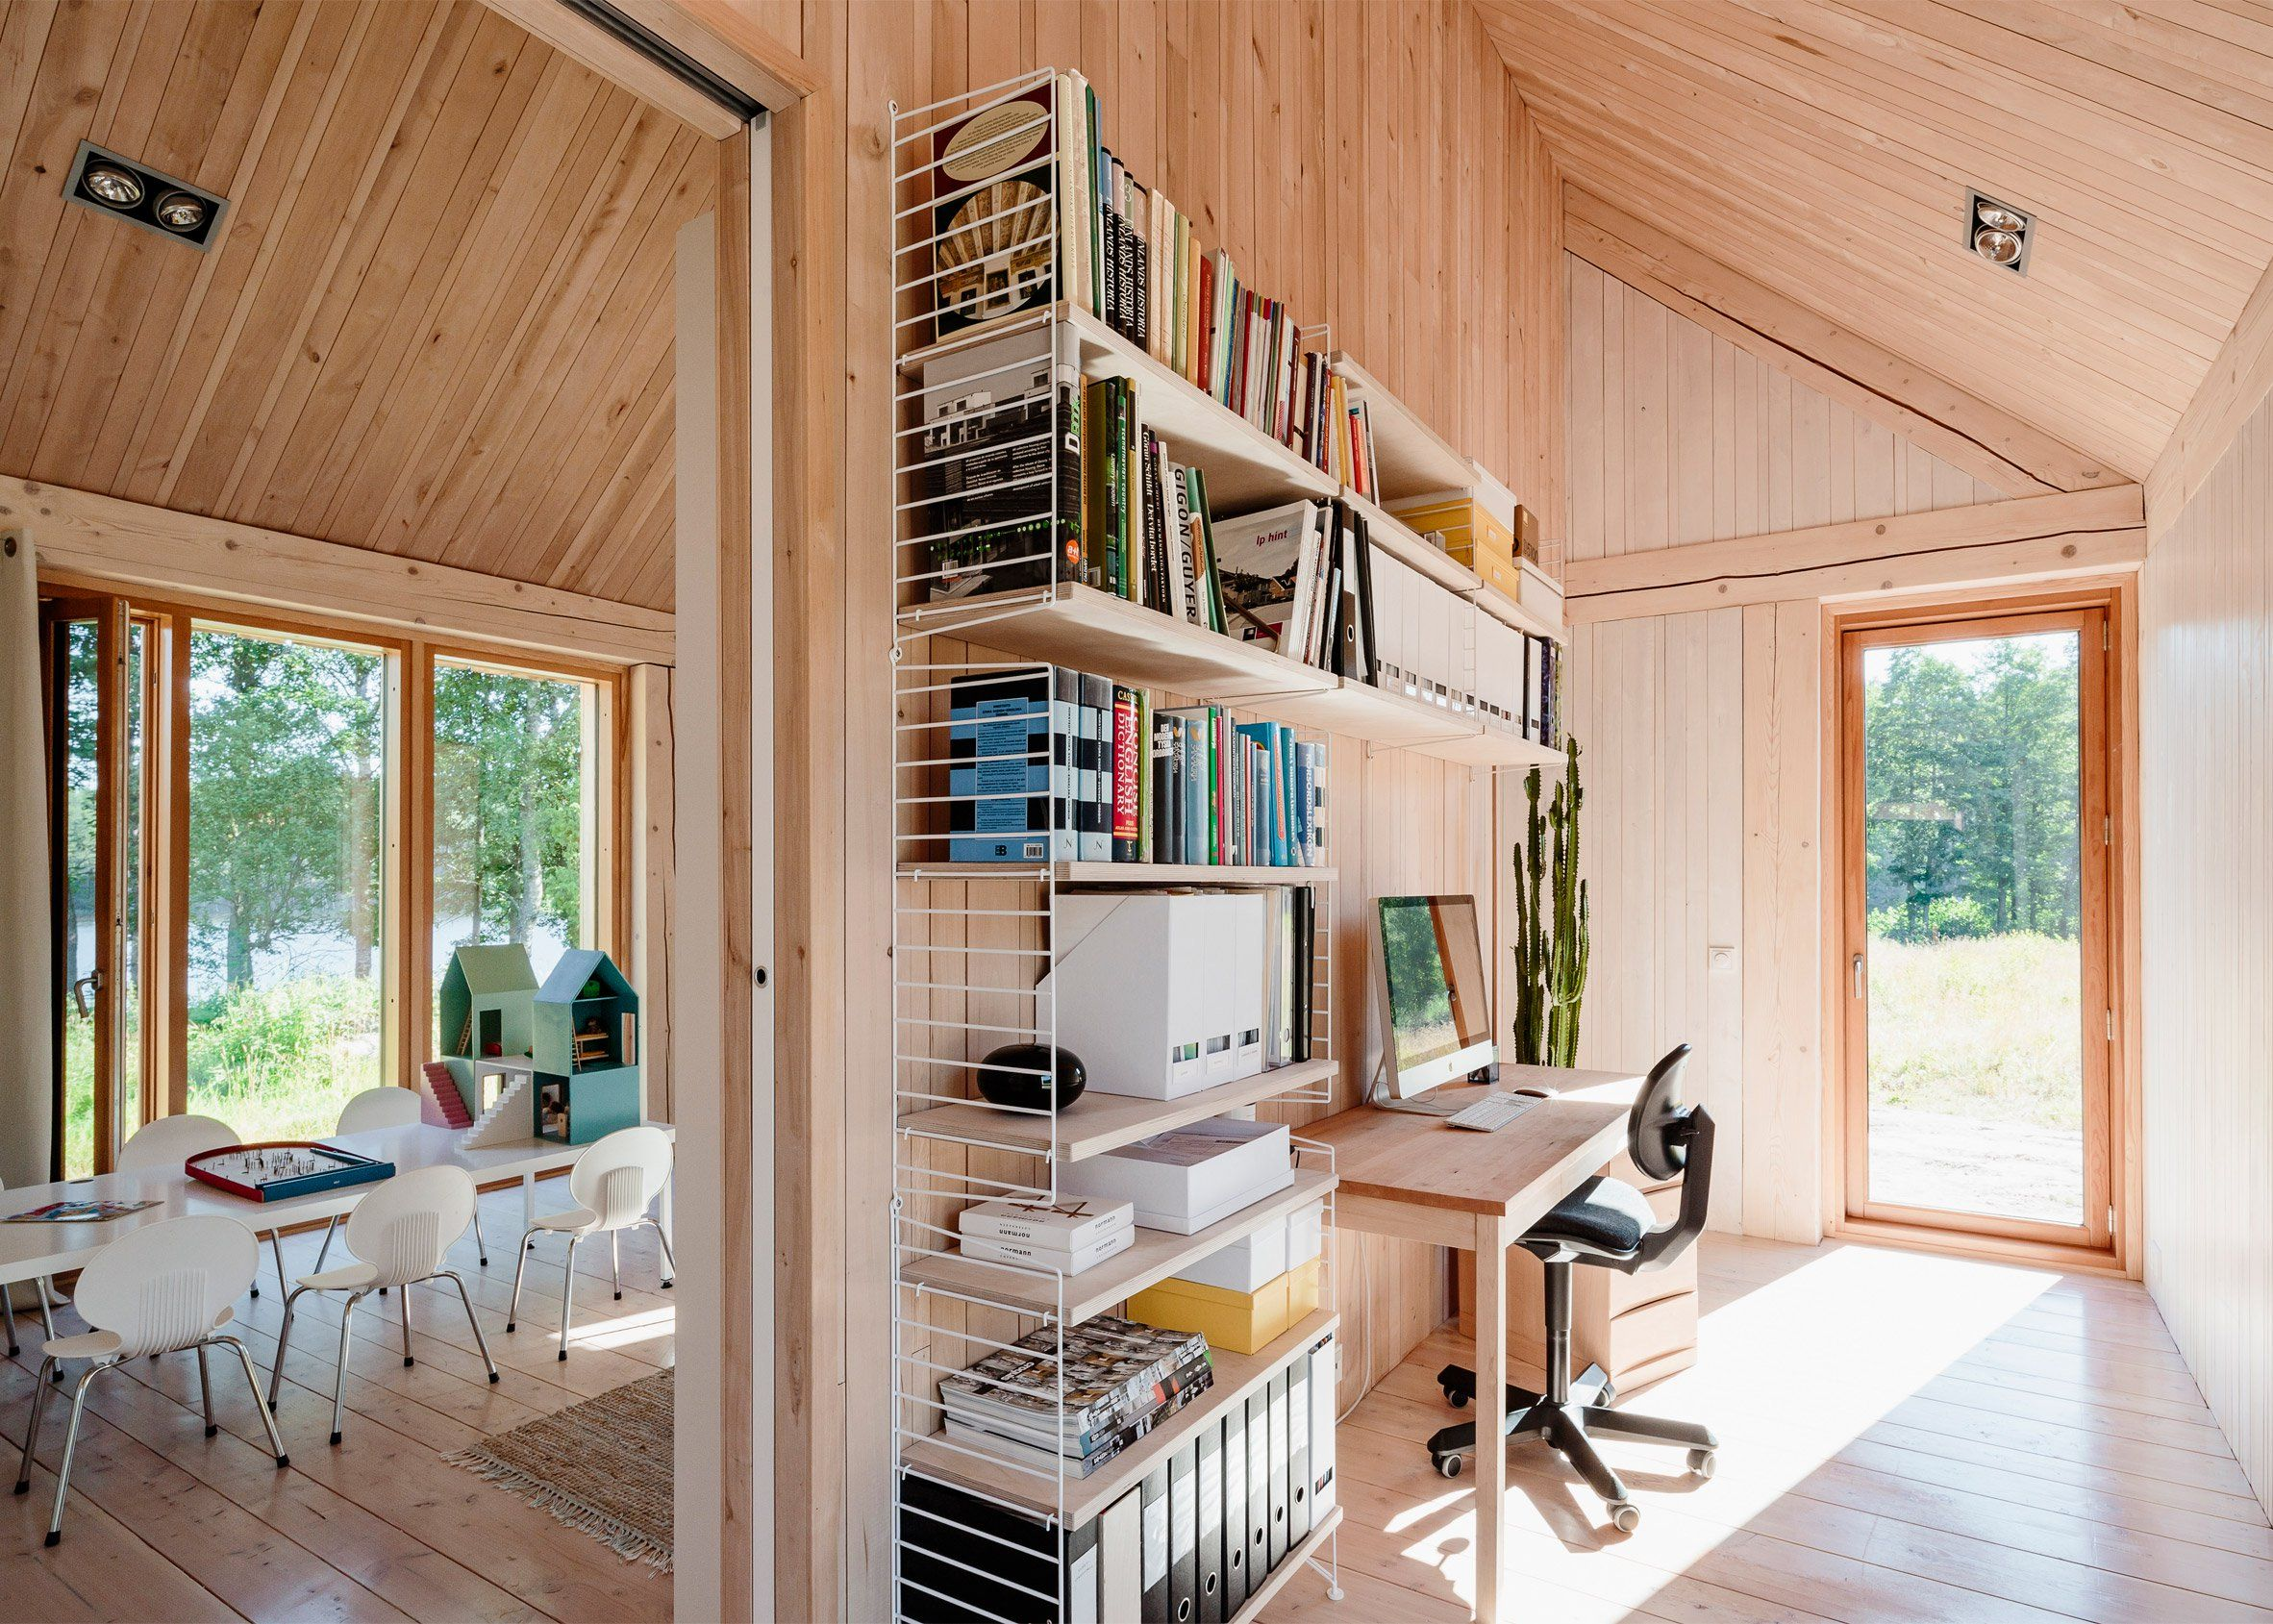 design office space dwelling. Finnish Lakehouse Keeps Things Simple MNy Arkitekter Built House Åkerudden By A Lake In The Rural Community Of Tenala. Result Emphasizes \u201cauthenticity, Design Office Space Dwelling E